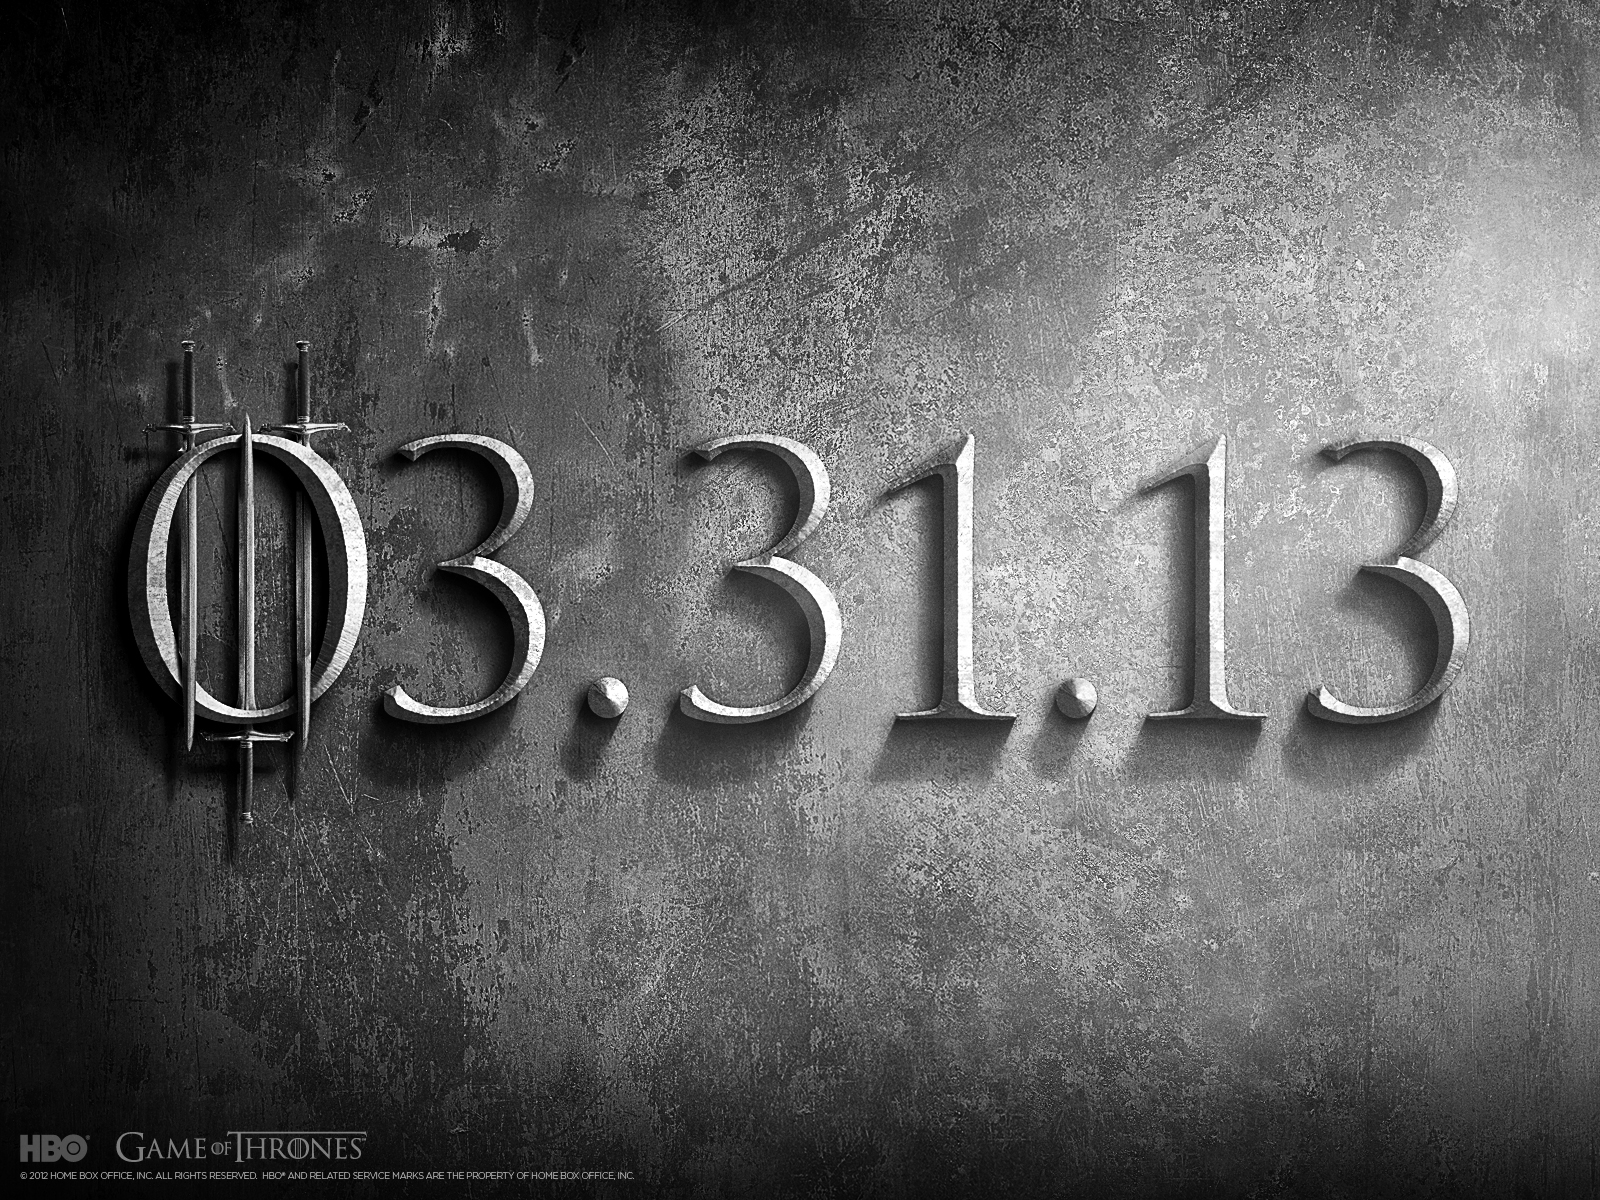 First Trailer for Game of Thrones Season 3 - Skeazy Journal